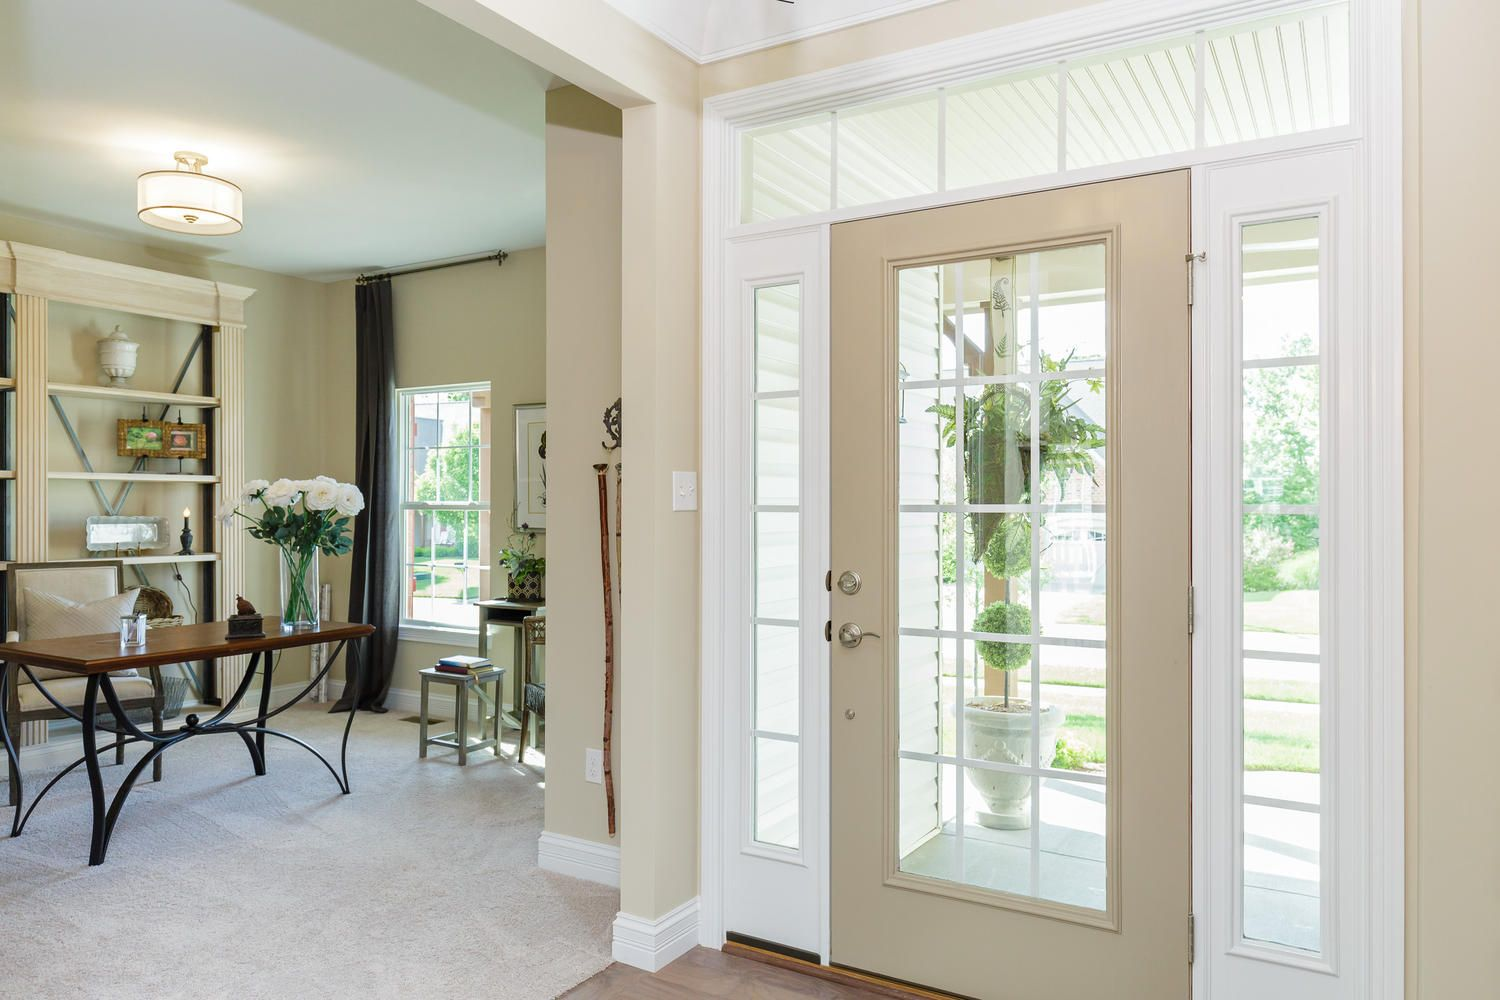 A Full Glass Entry Door Is Surrounded By Sidelights And A Glass